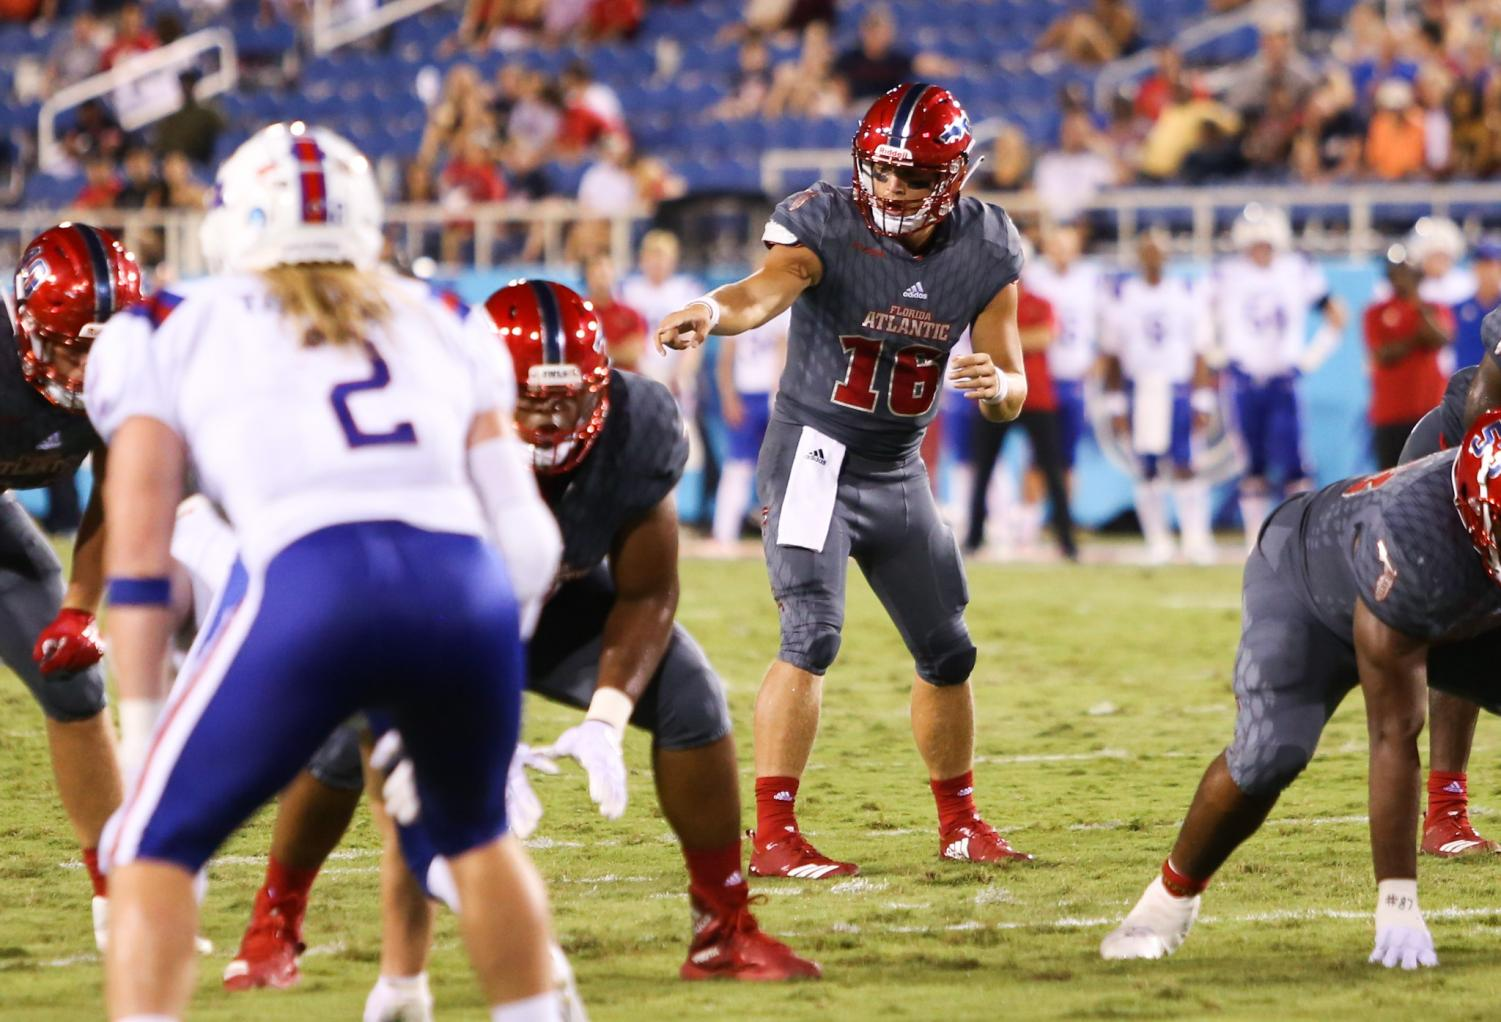 FAU graduate student quarterback Rafe Peavey (16), who was the starting quarterback against LA Tech signals to his teammates to prepare for play. Photo by: Alexander Rodriguez